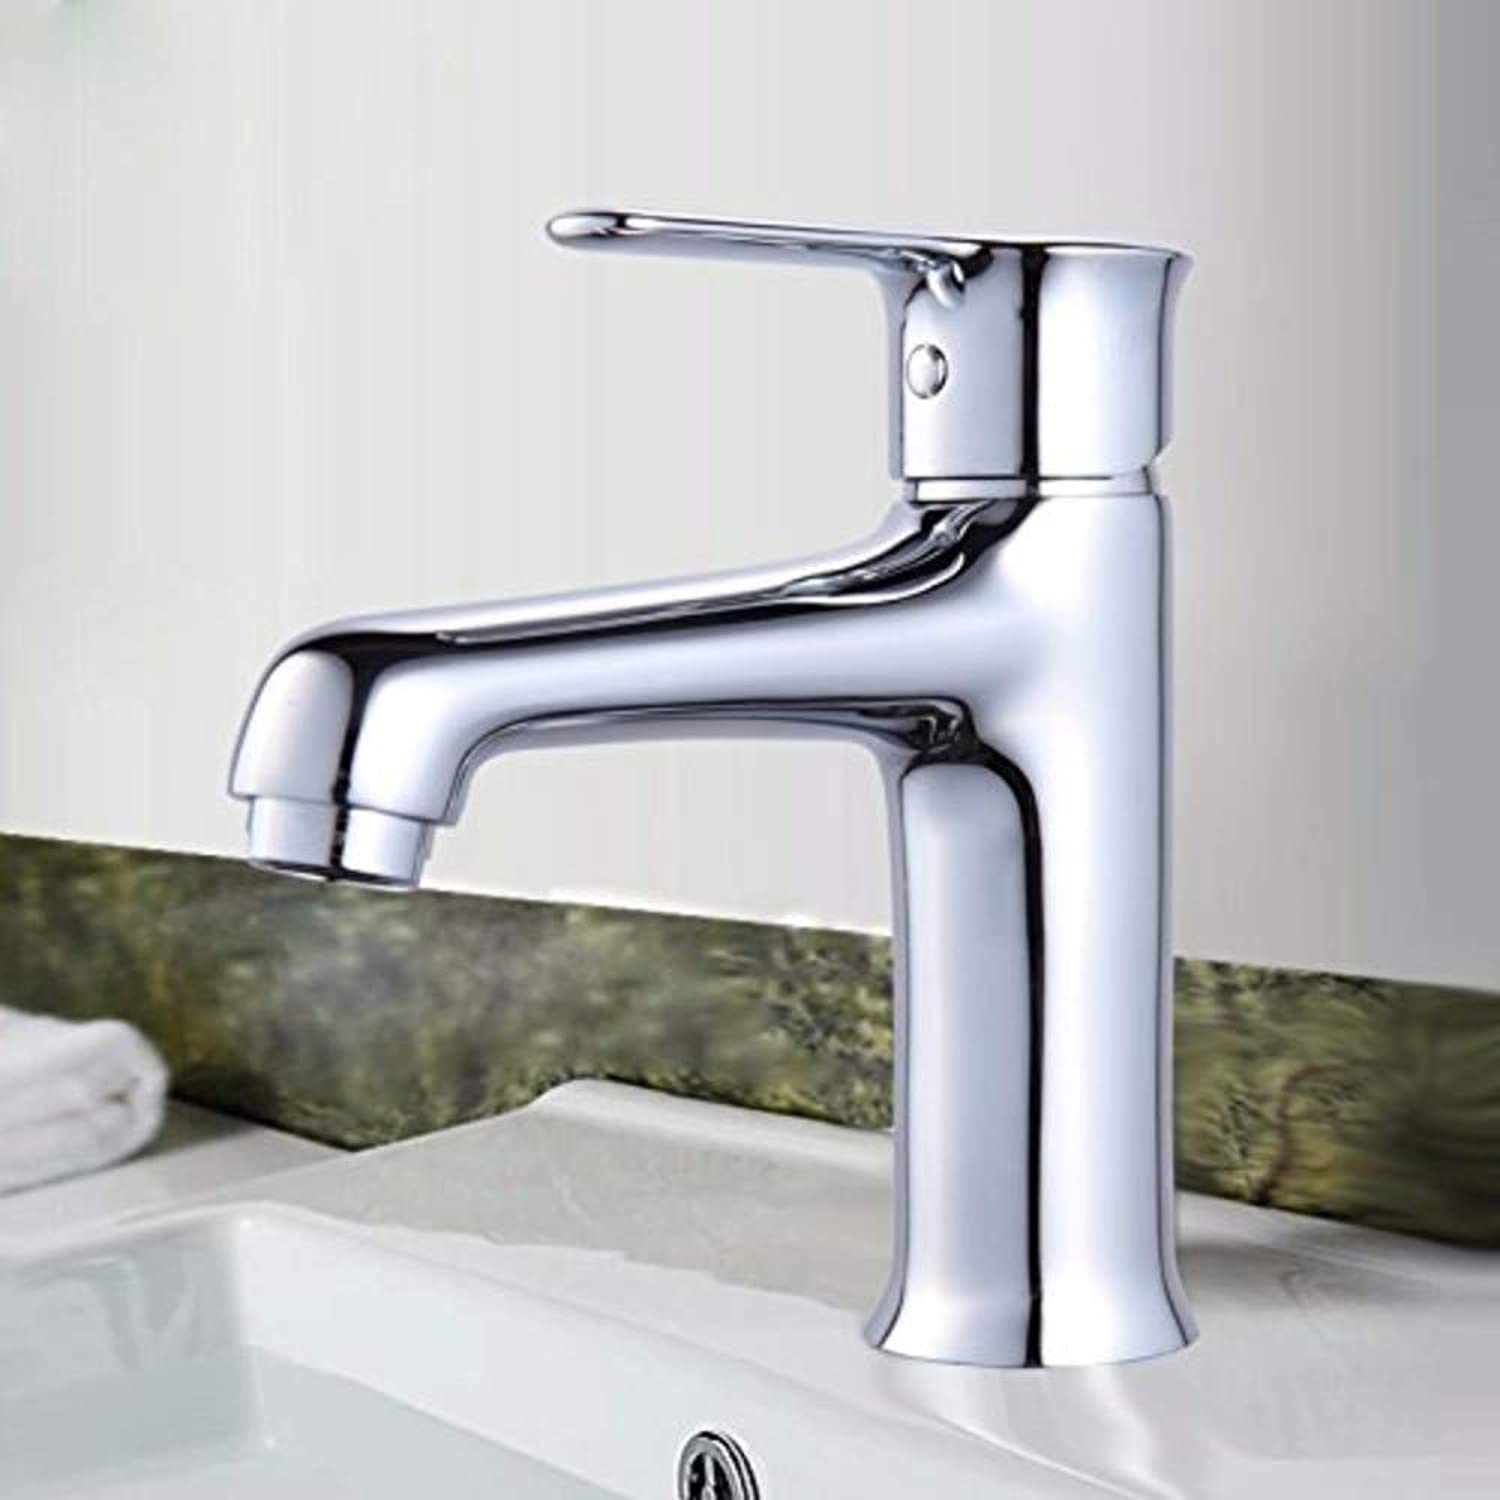 360° redating Faucet Retro Faucetbasin Mixer Hot and Cold Wash Basin in The Single Hole Mixer Washbasin High Quality Faucet